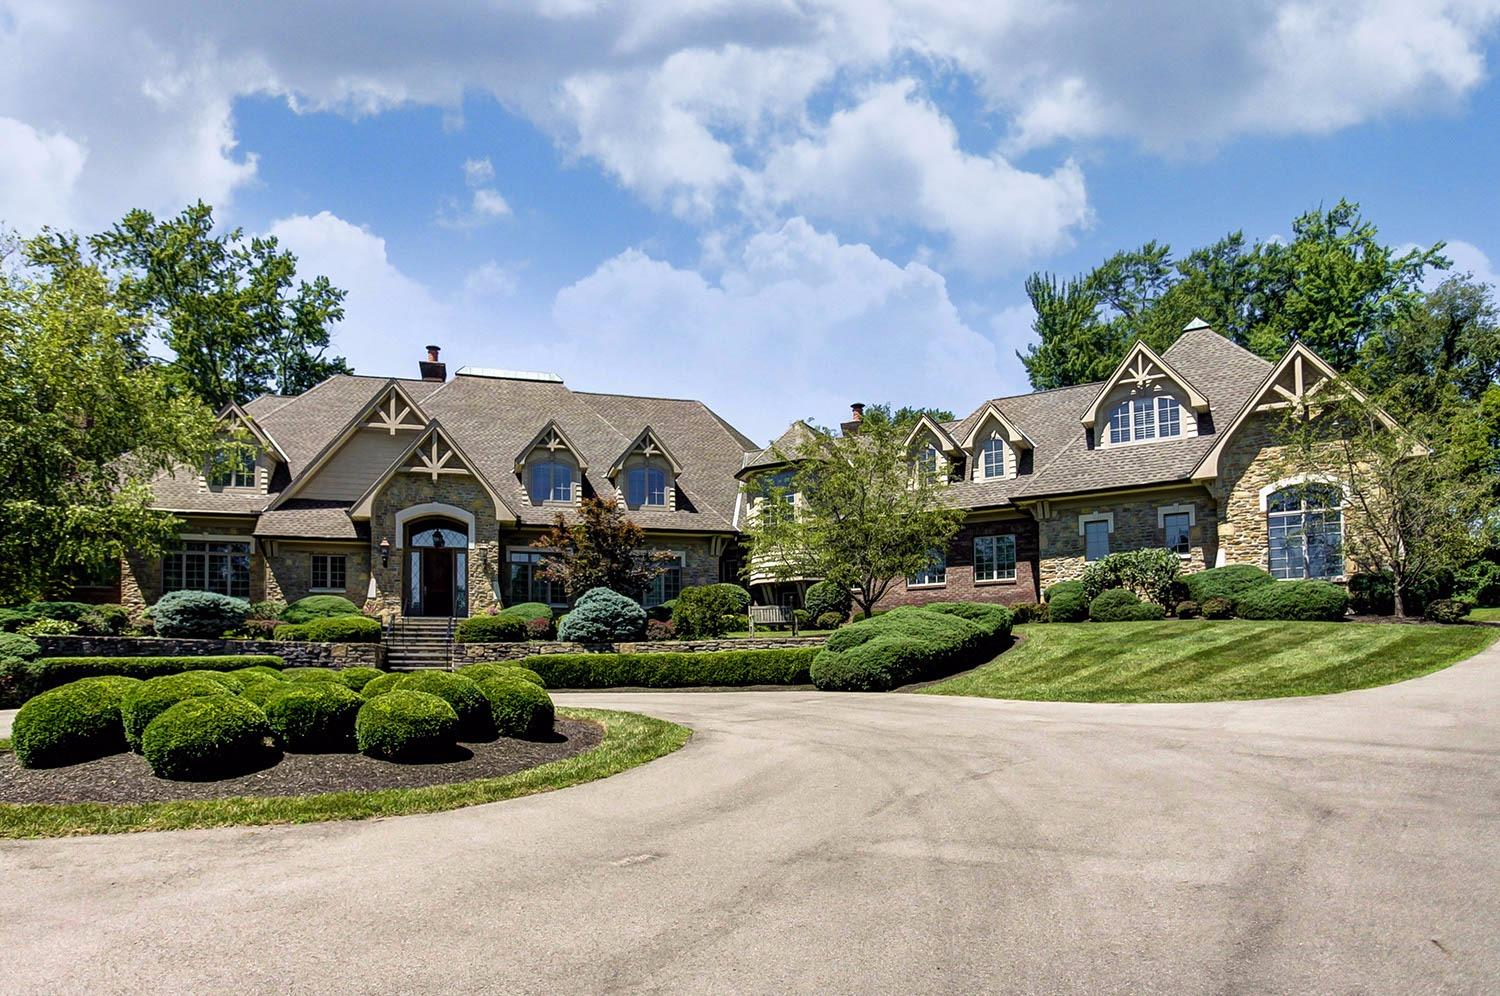 Magnificent French Country Manor. Unmatched construction using the finest materials. Elegant, yet functional, details. An ideal setting. First floor master suite with adjoining luxury bath. Cooks kitchen adjoining family room w/ fireplace and enclosed porch w/ fireplace. 4 car garage w/ extra space for whatever.